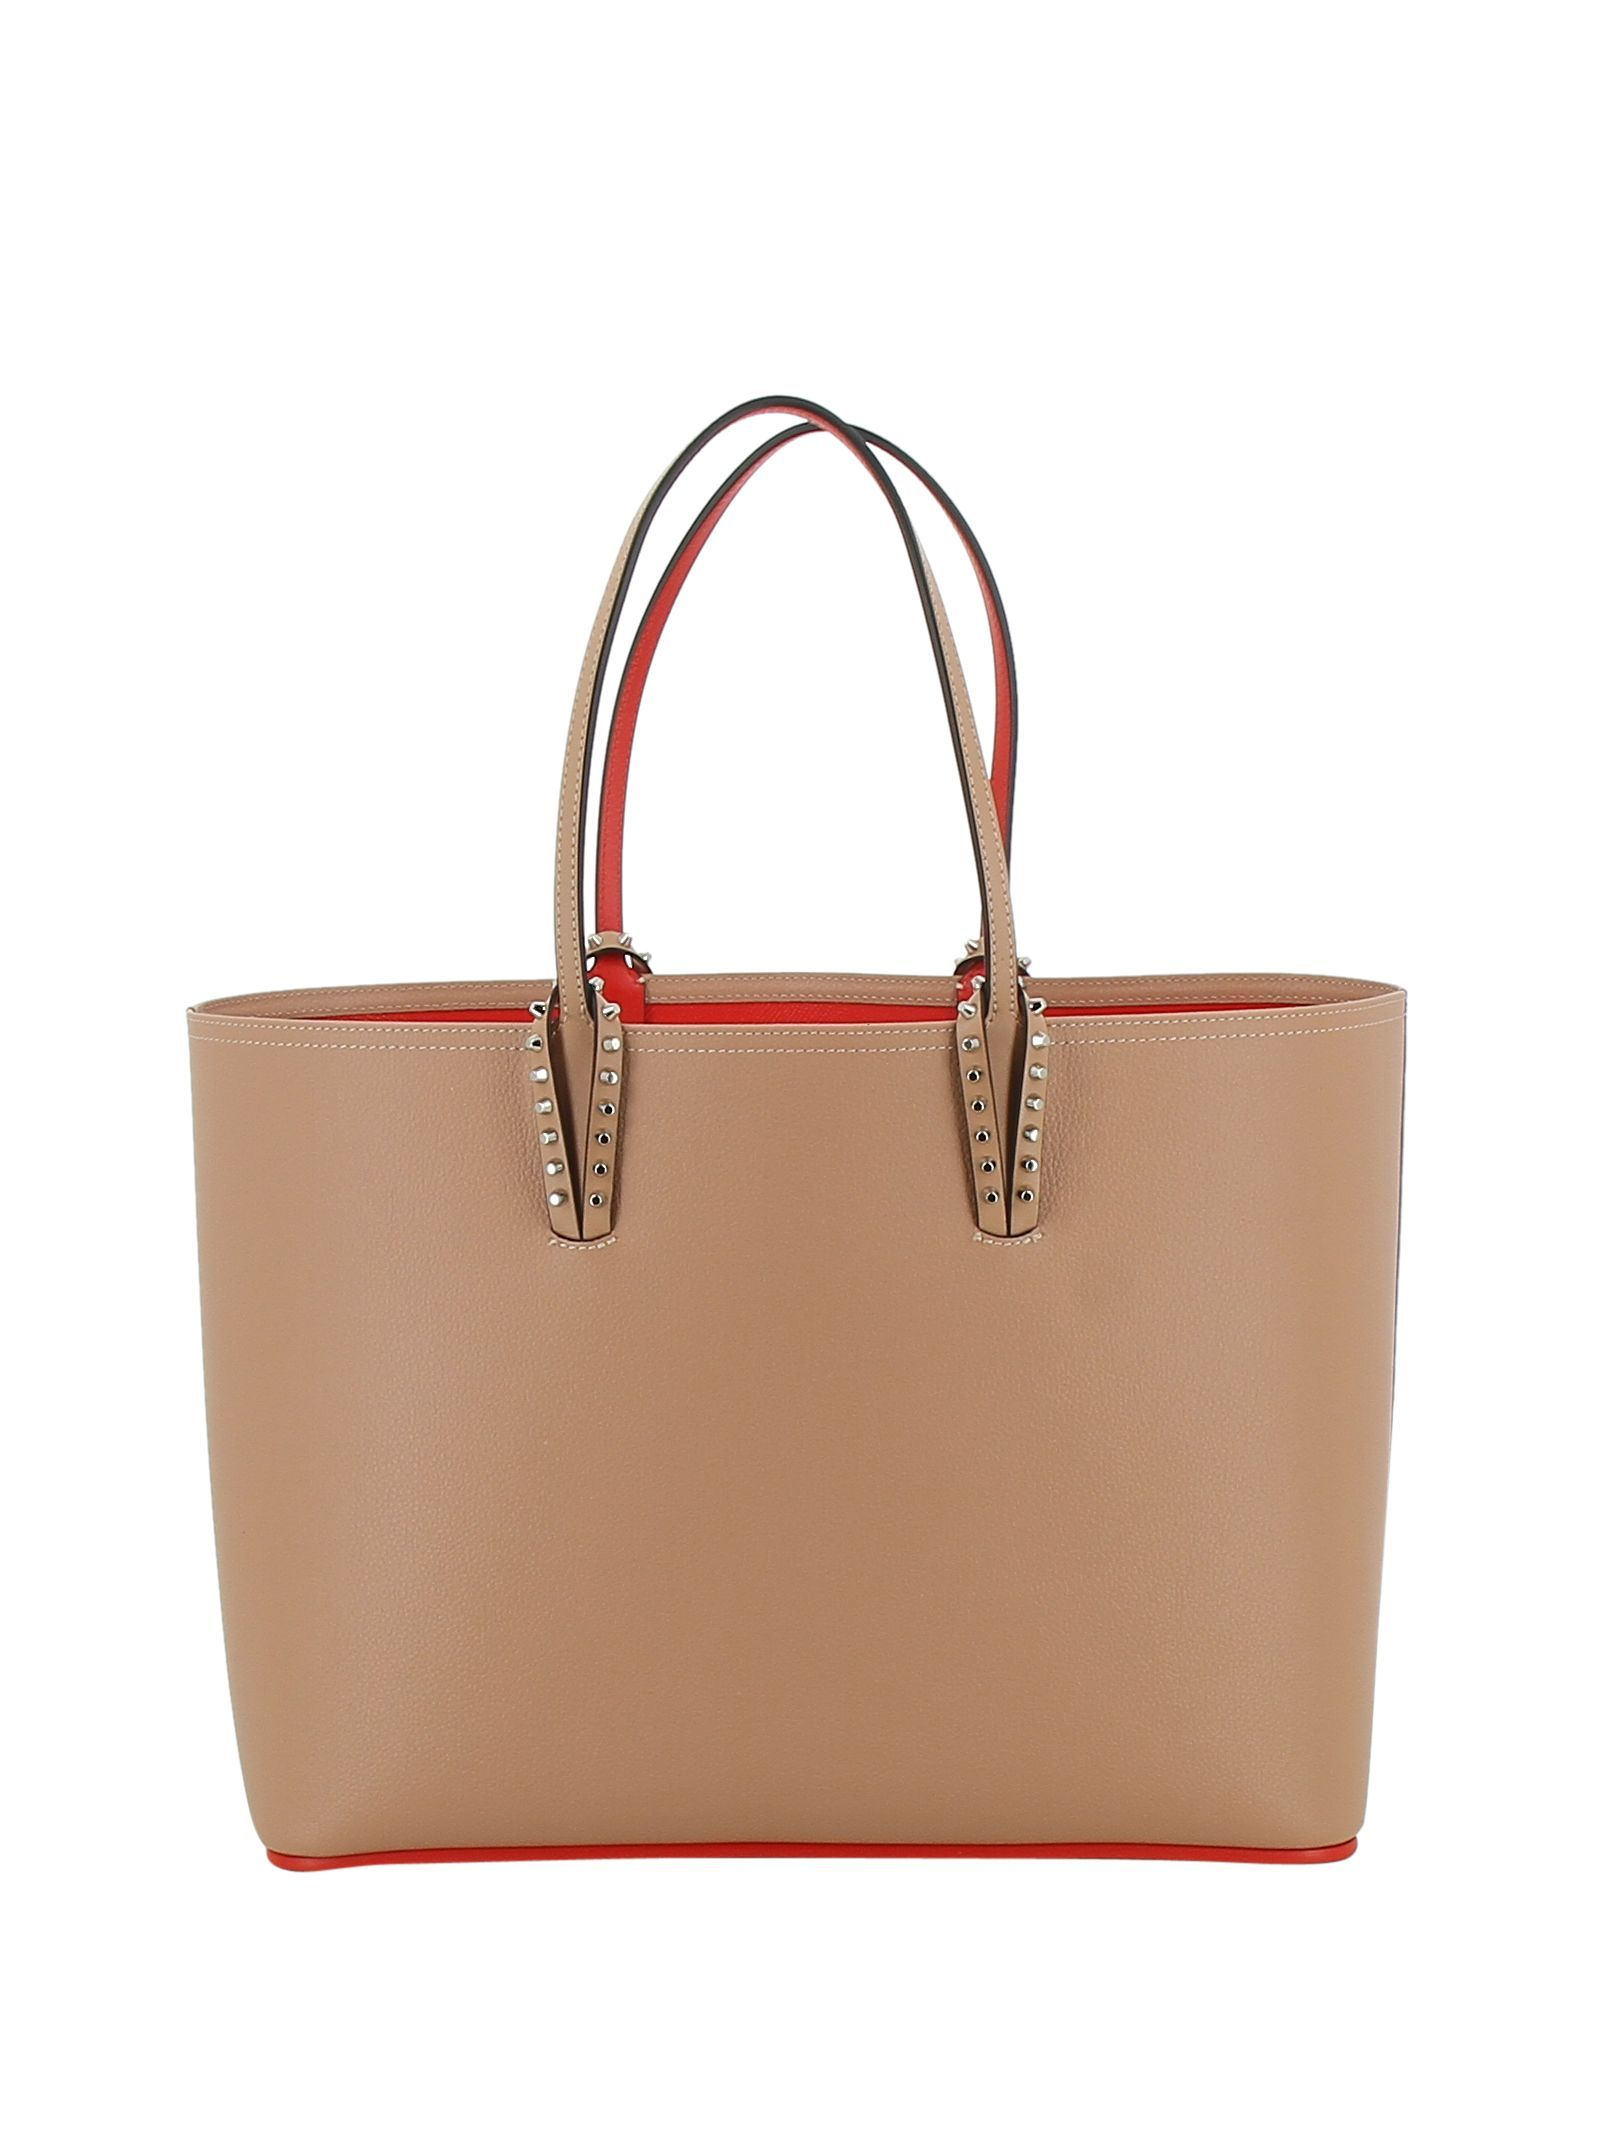 9ad14319be7 CHRISTIAN LOUBOUTIN CLASSIC TOTE. #christianlouboutin #bags #hand ...